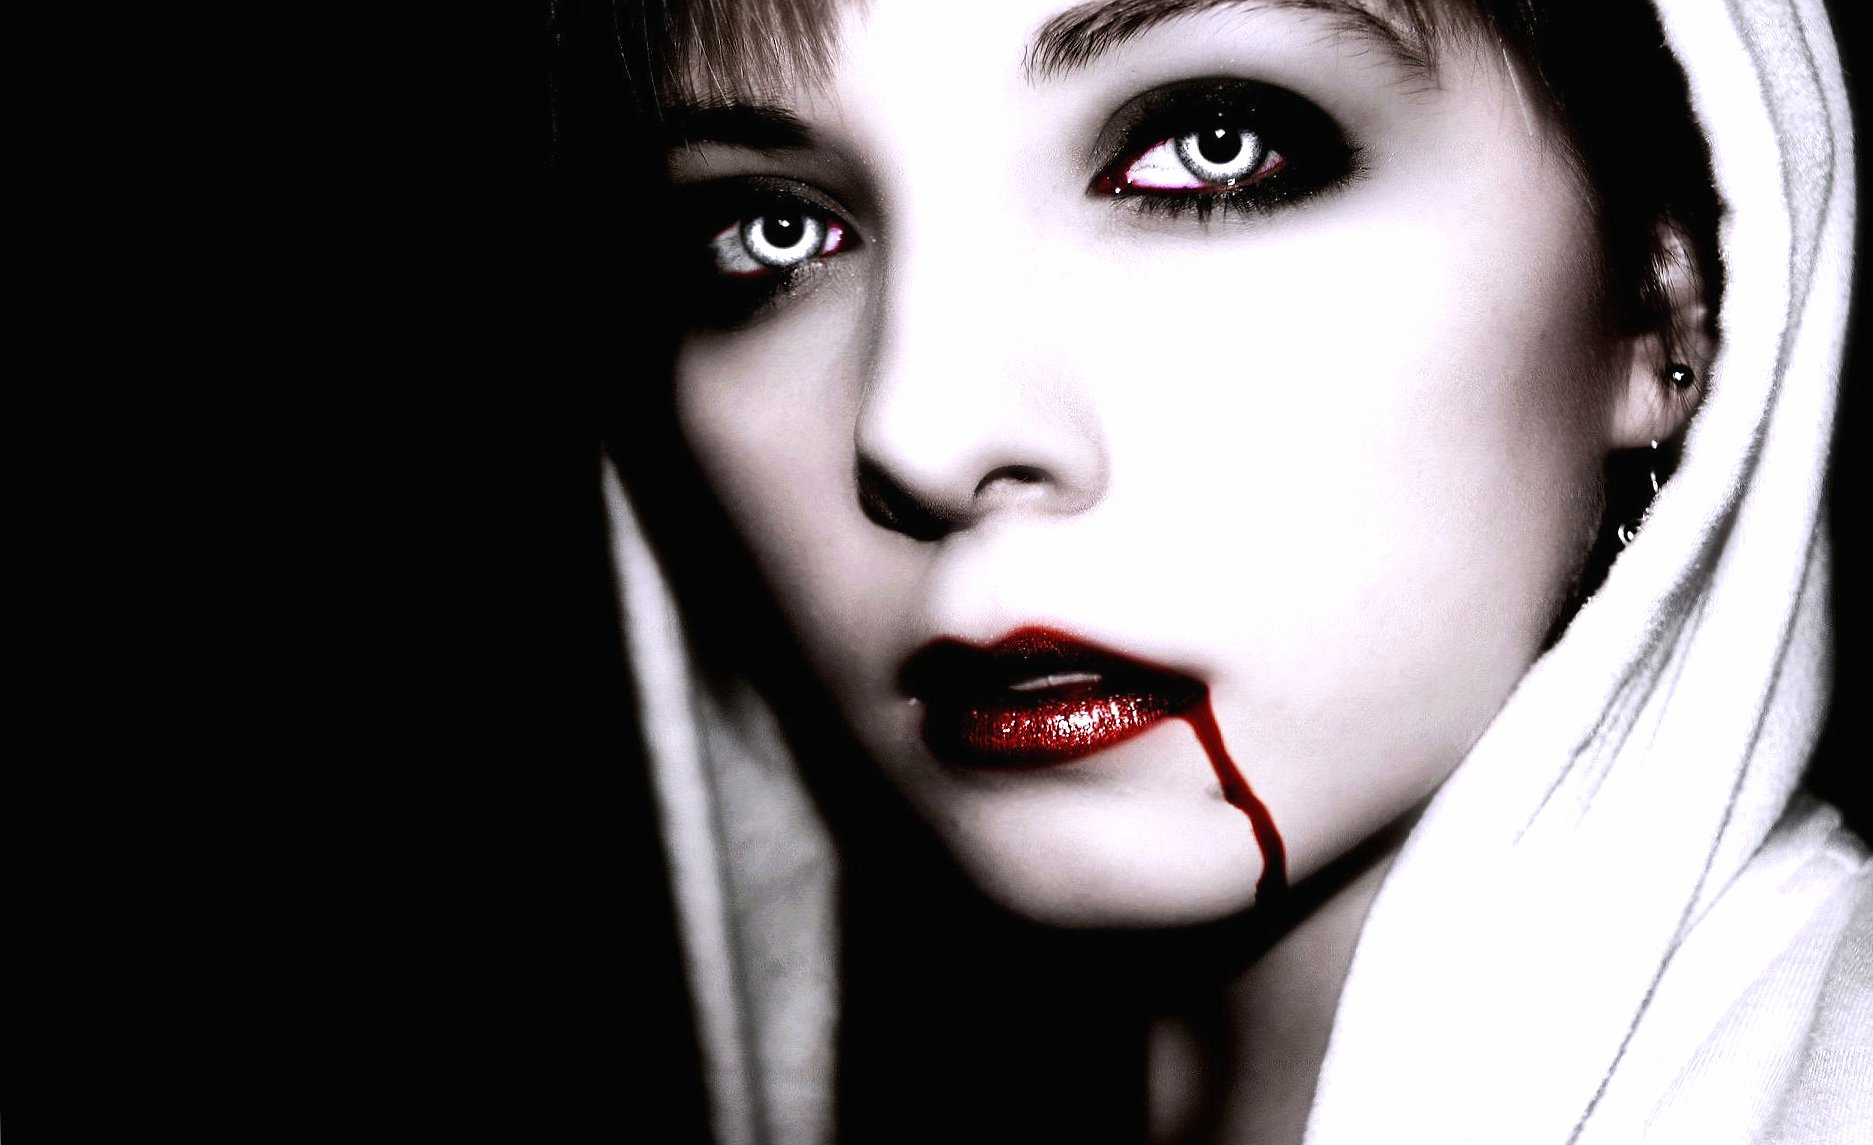 Amazing vampire woman at 640 x 960 iPhone 4 size wallpapers HD quality